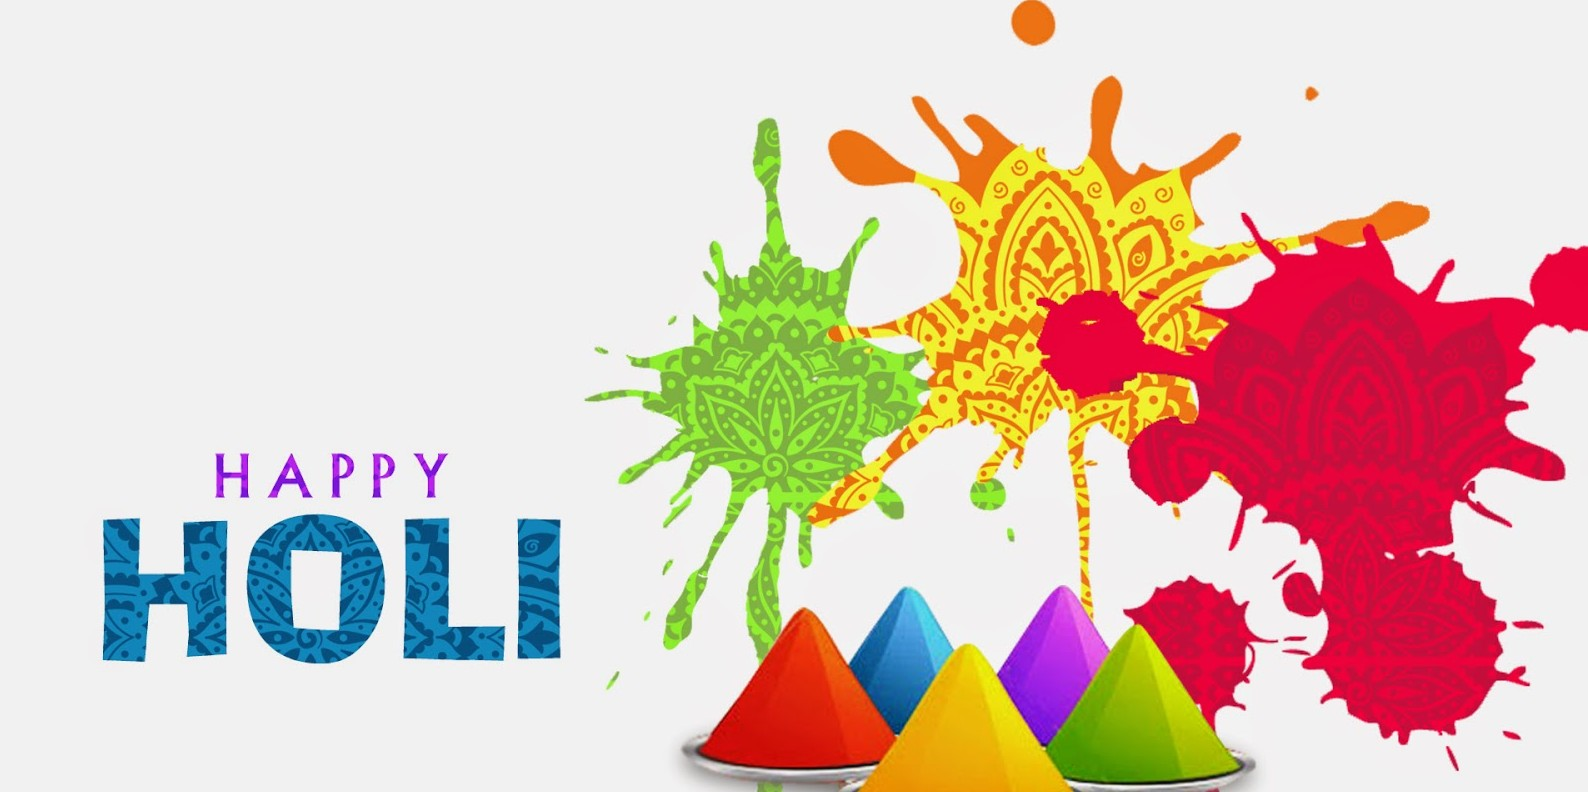 100 Happy Holi Wishes Latest 2018 Holi Images Message Greetings